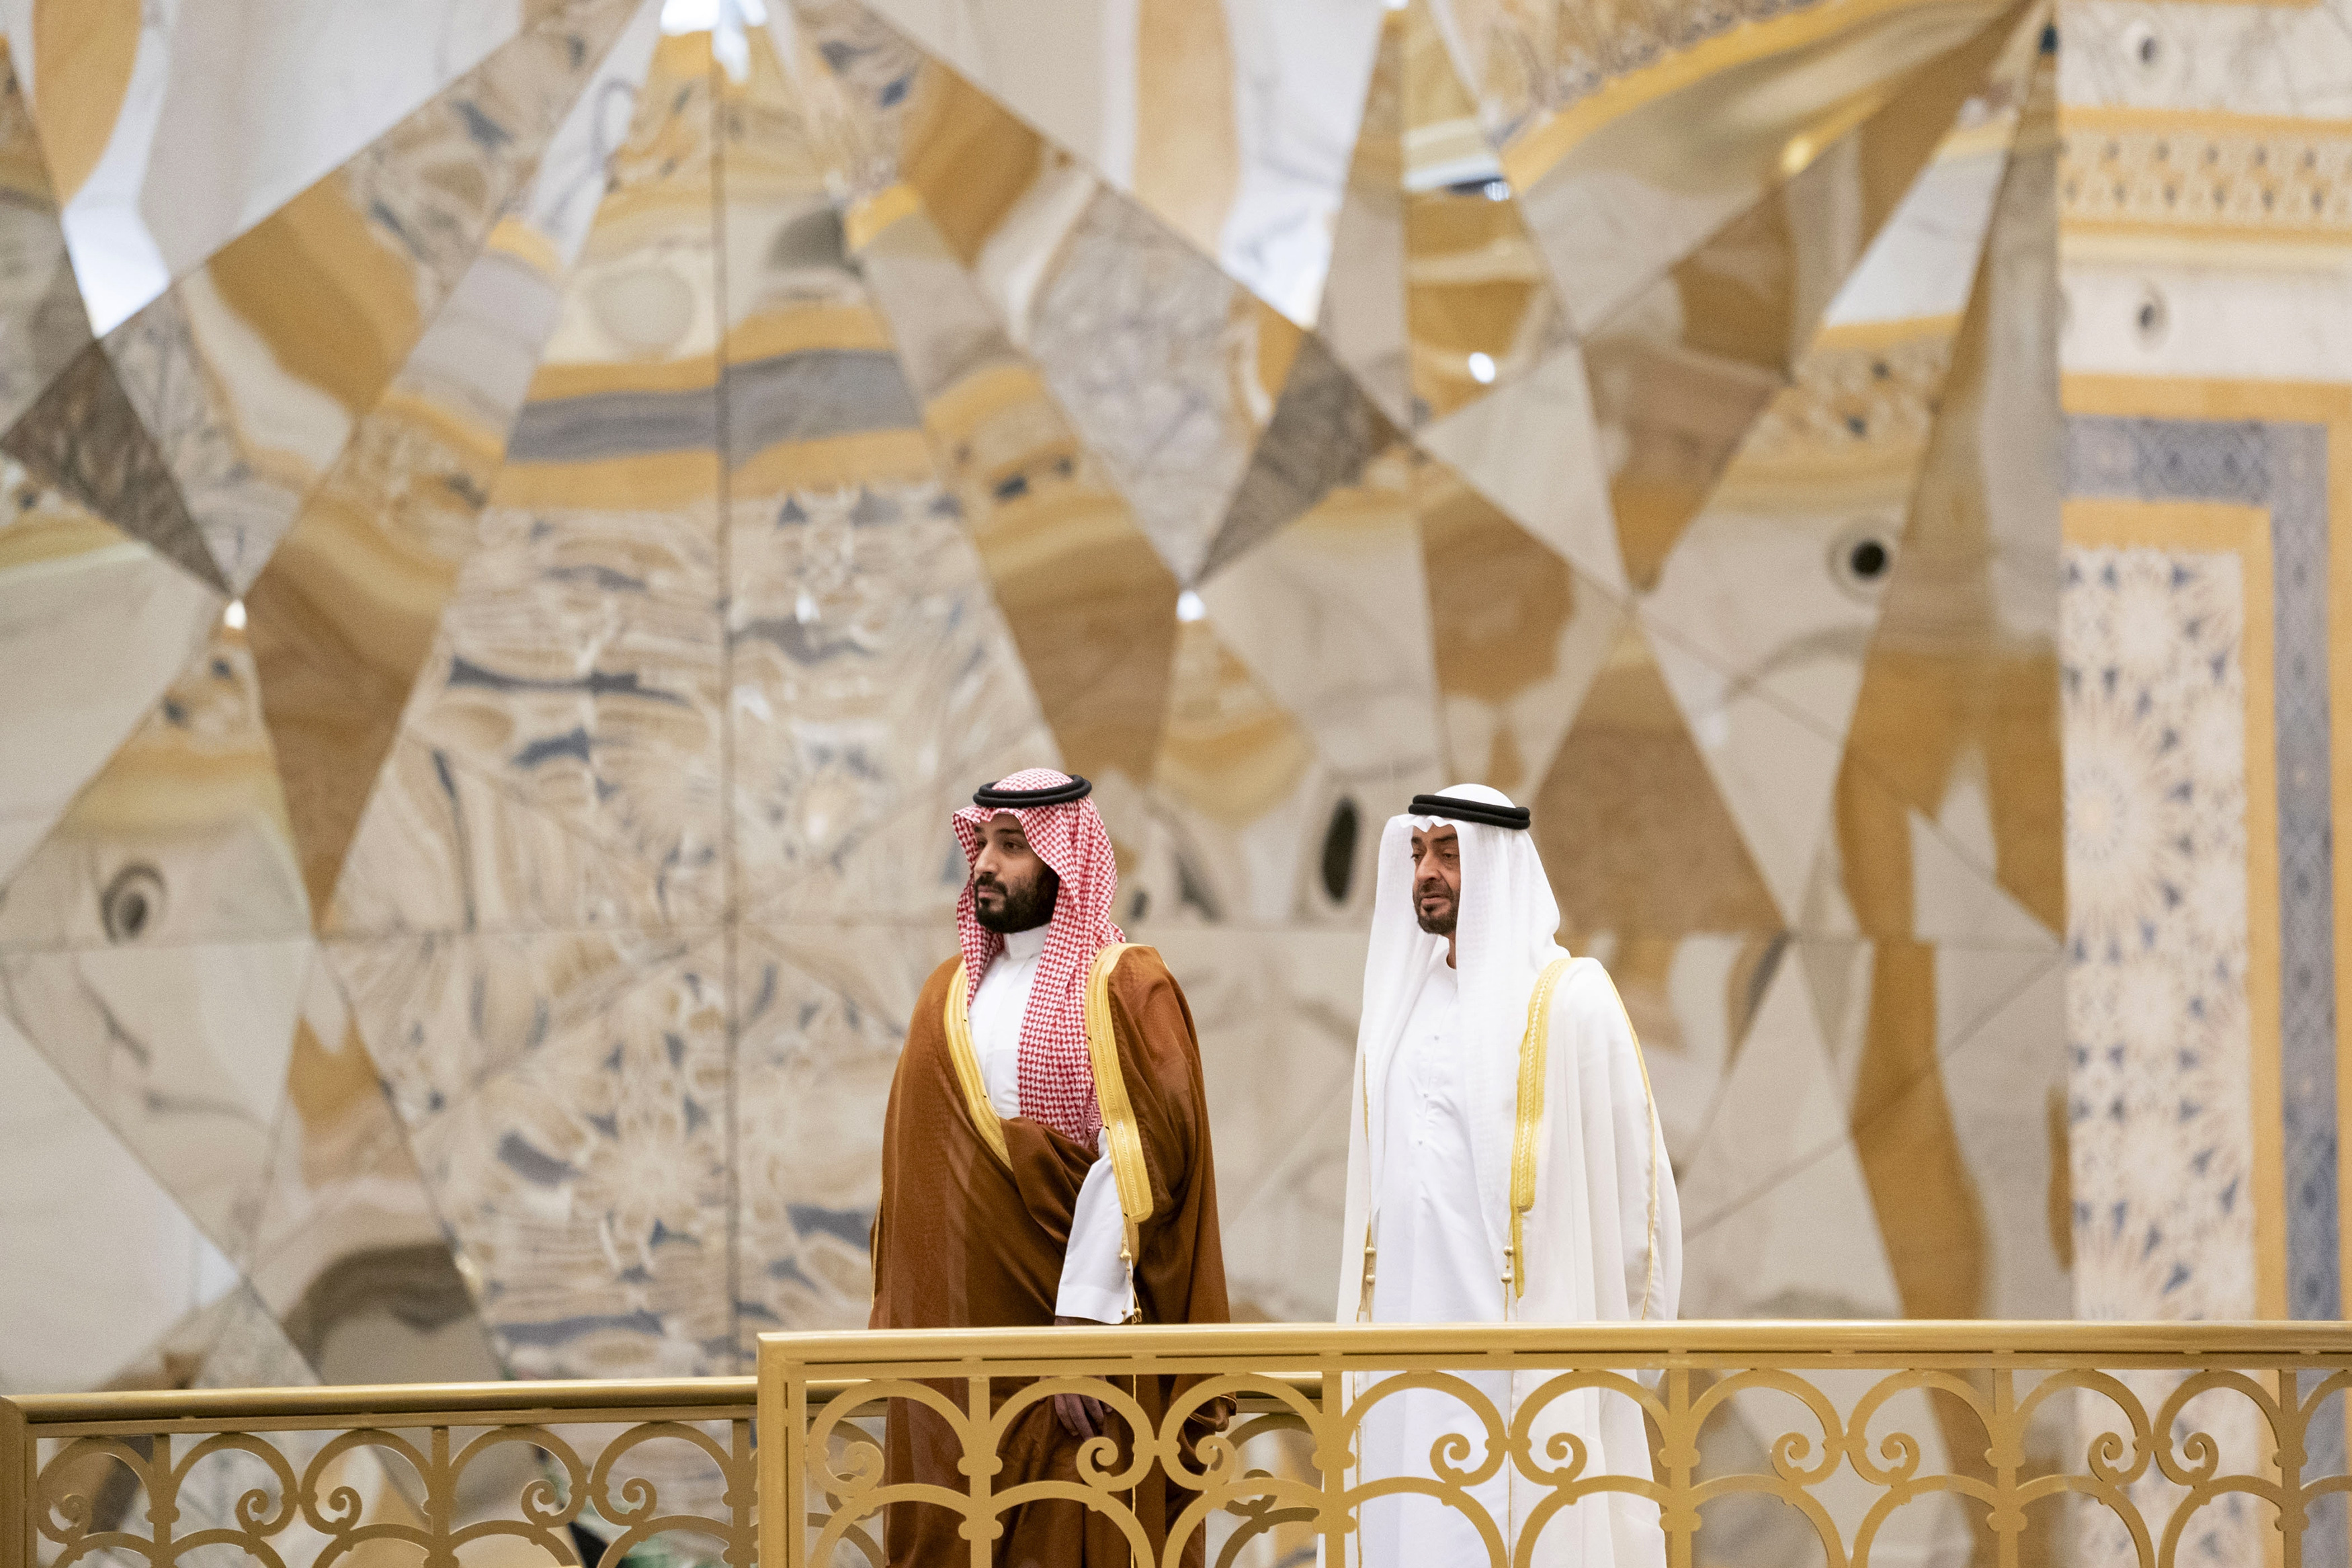 In this photo released by Ministry of Presidential Affairs, Prince Mohammed bin Salman, attends a ceremony with Prince Mohammed bin Zayed Al Nahyan at Qasr Al Watan in Abu Dhabi, United Arab Emirates on Wednesday, November 27, 2019,